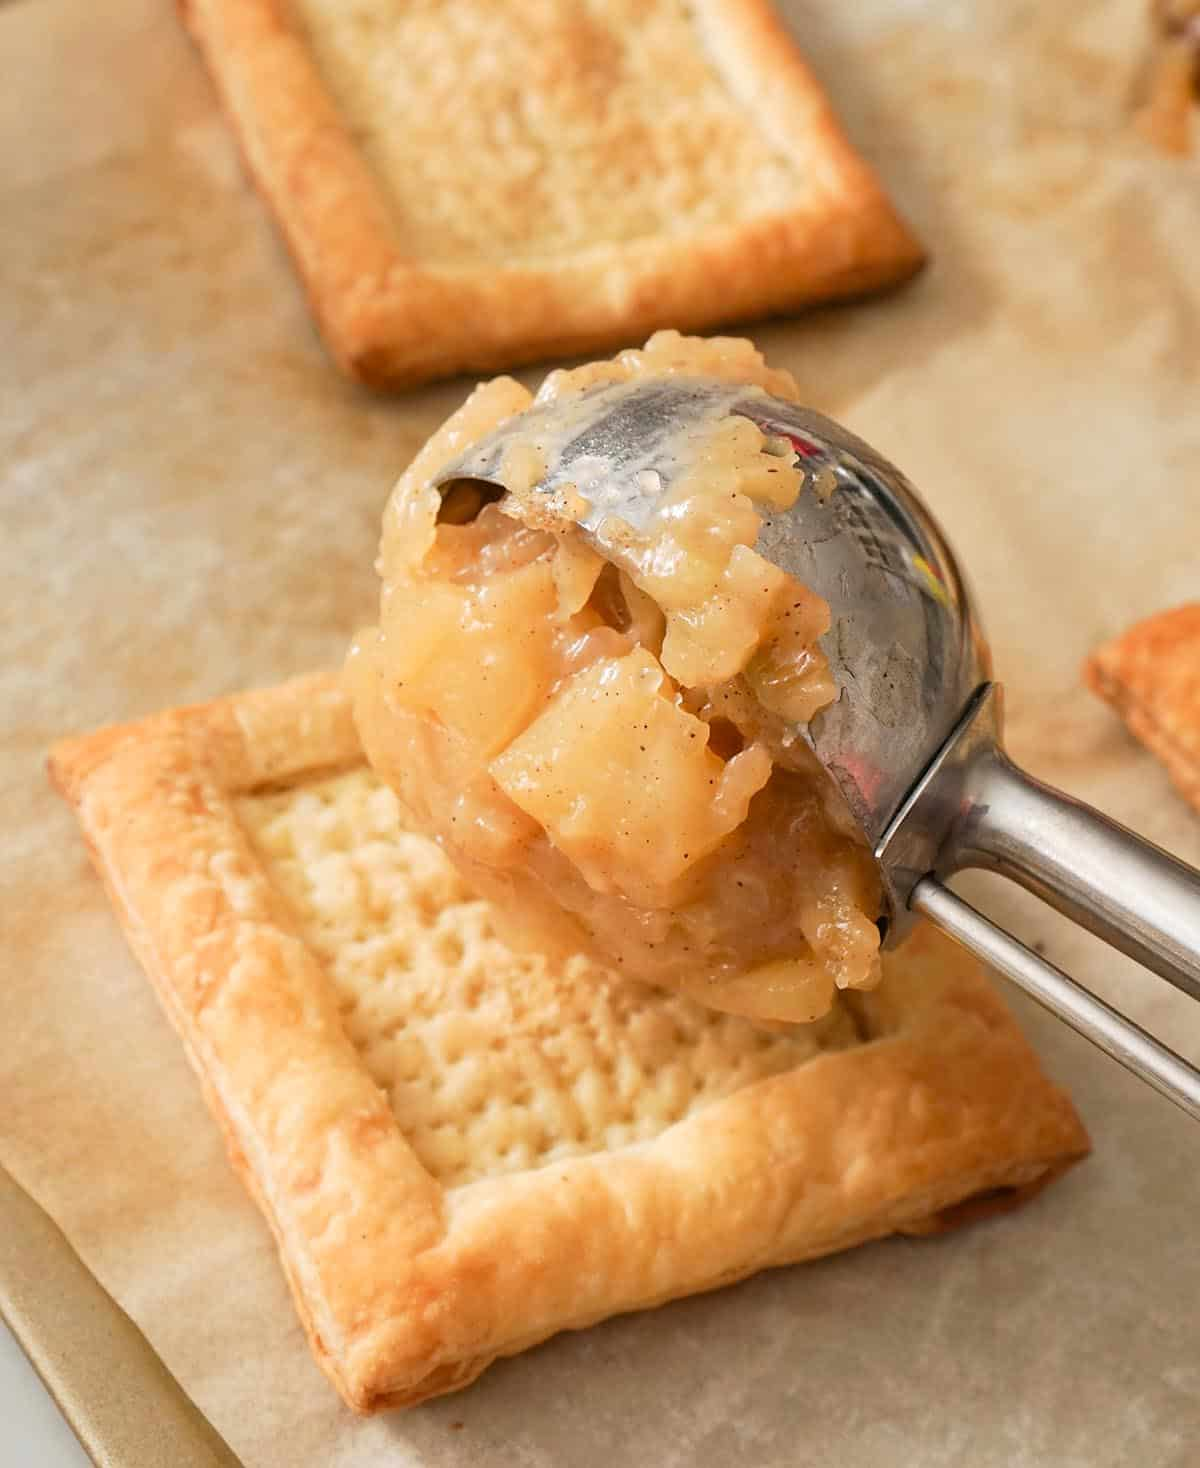 Apple pie filling being added to puff pastry shells.